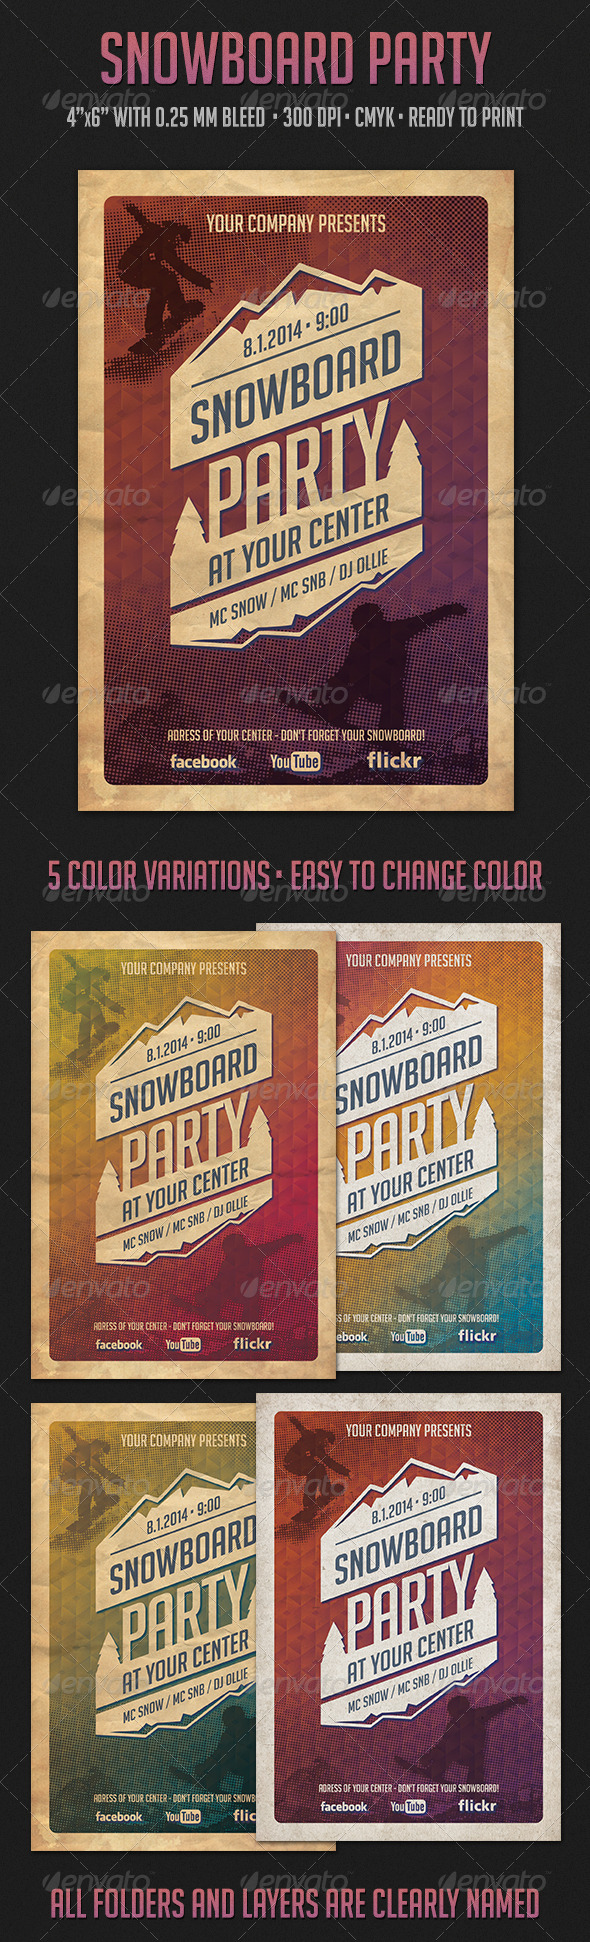 GraphicRiver Snowboard Party Flyer 6183595